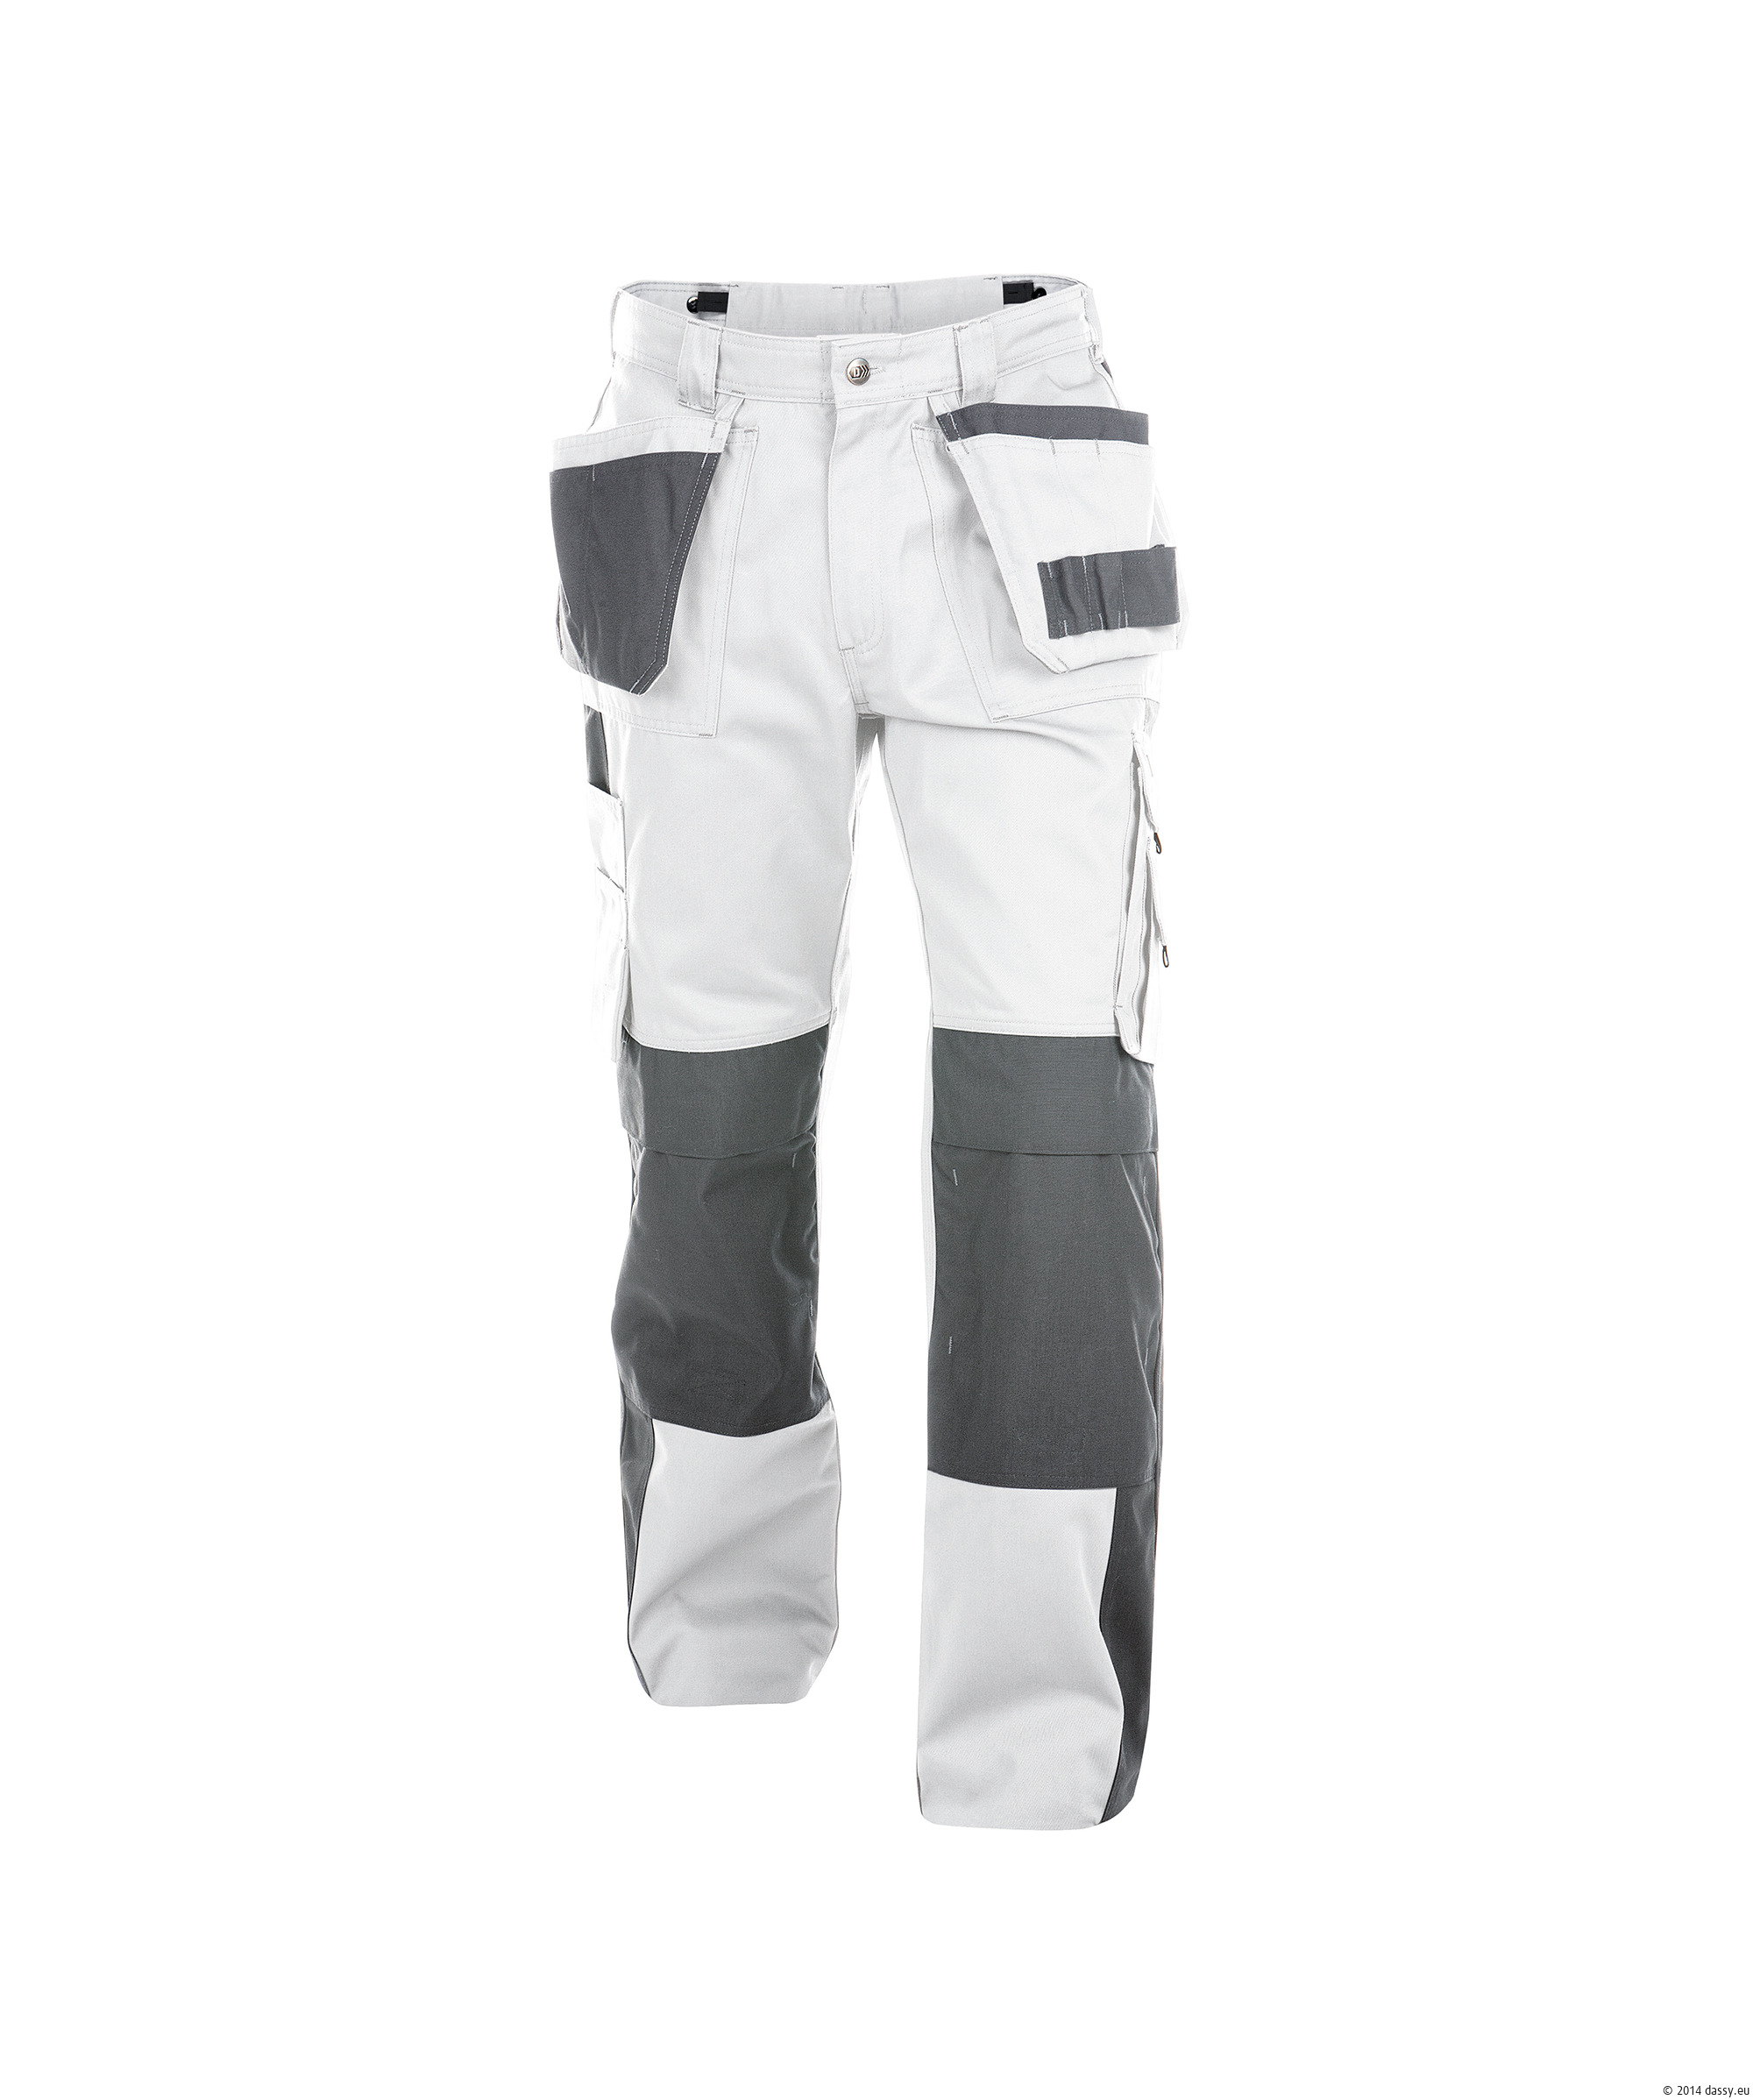 dassy seattle work trousers white grey the safety shack. Black Bedroom Furniture Sets. Home Design Ideas